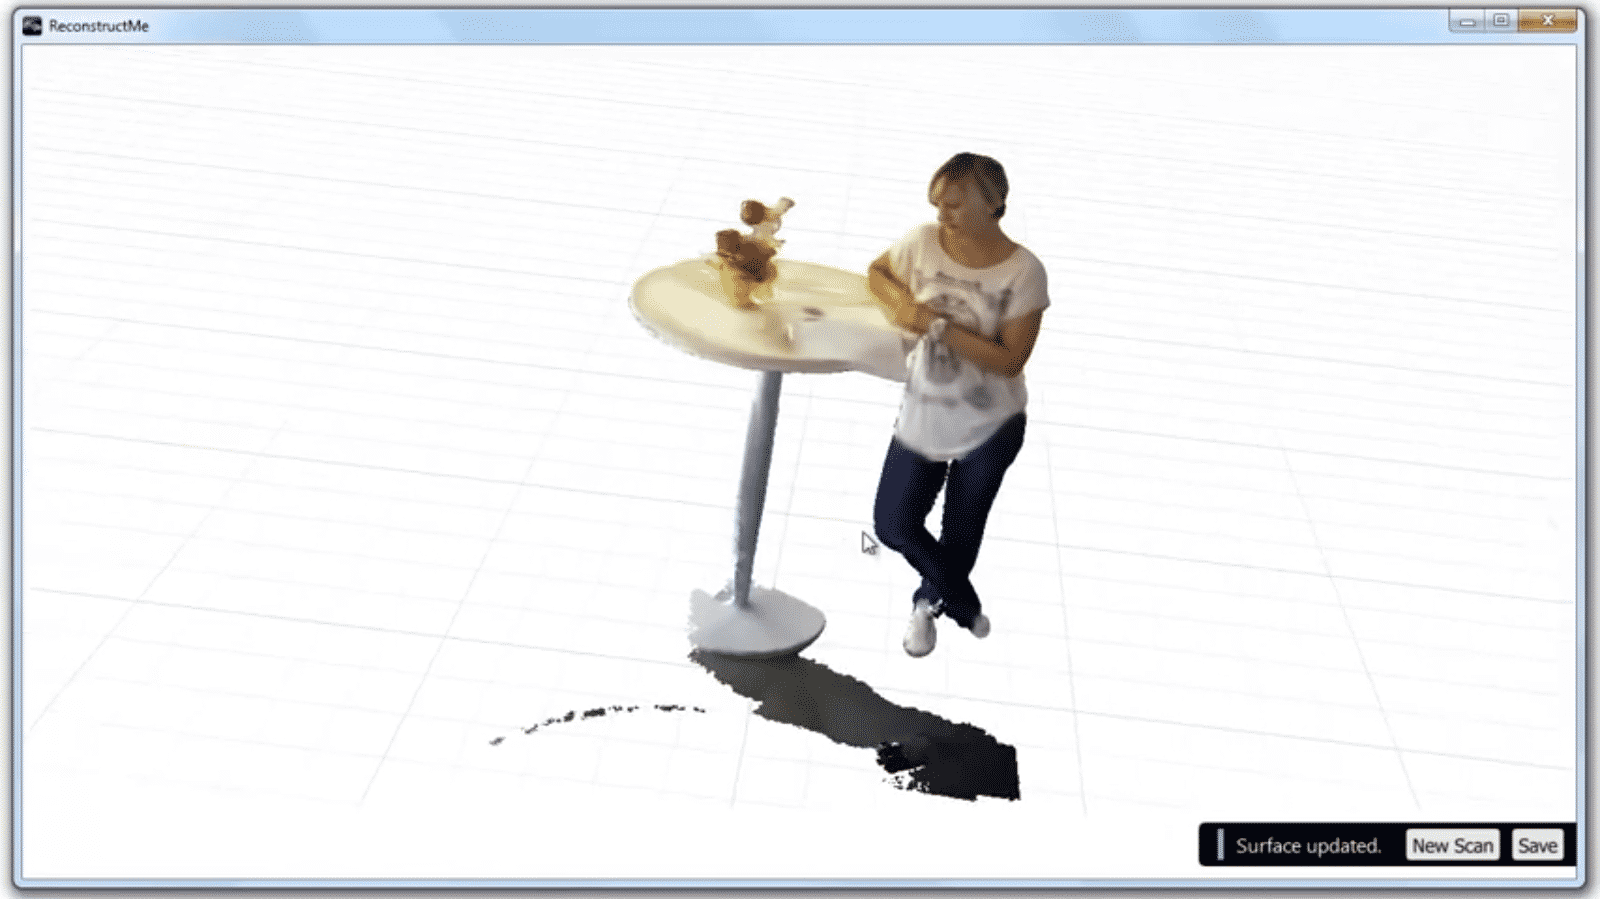 3D-Scan-Software ReconstructMe